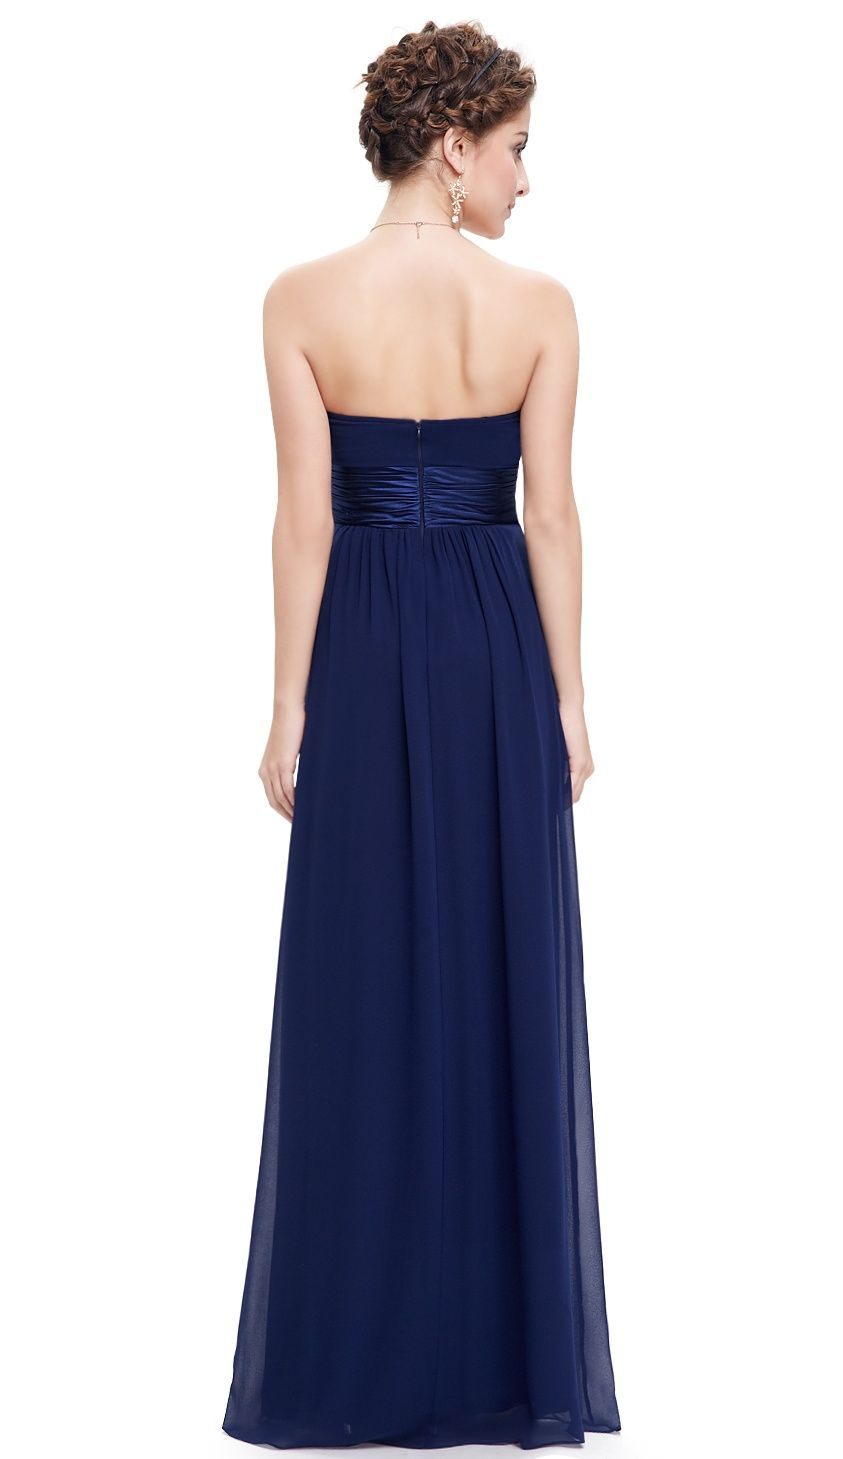 1ebd6096fc6 Ever-Pretty Womens Elegant Long Maxi Strapless Summer Wedding Guest  Bridesmaid Prom Dresses for Women 09955 Blue US 4 Maxi